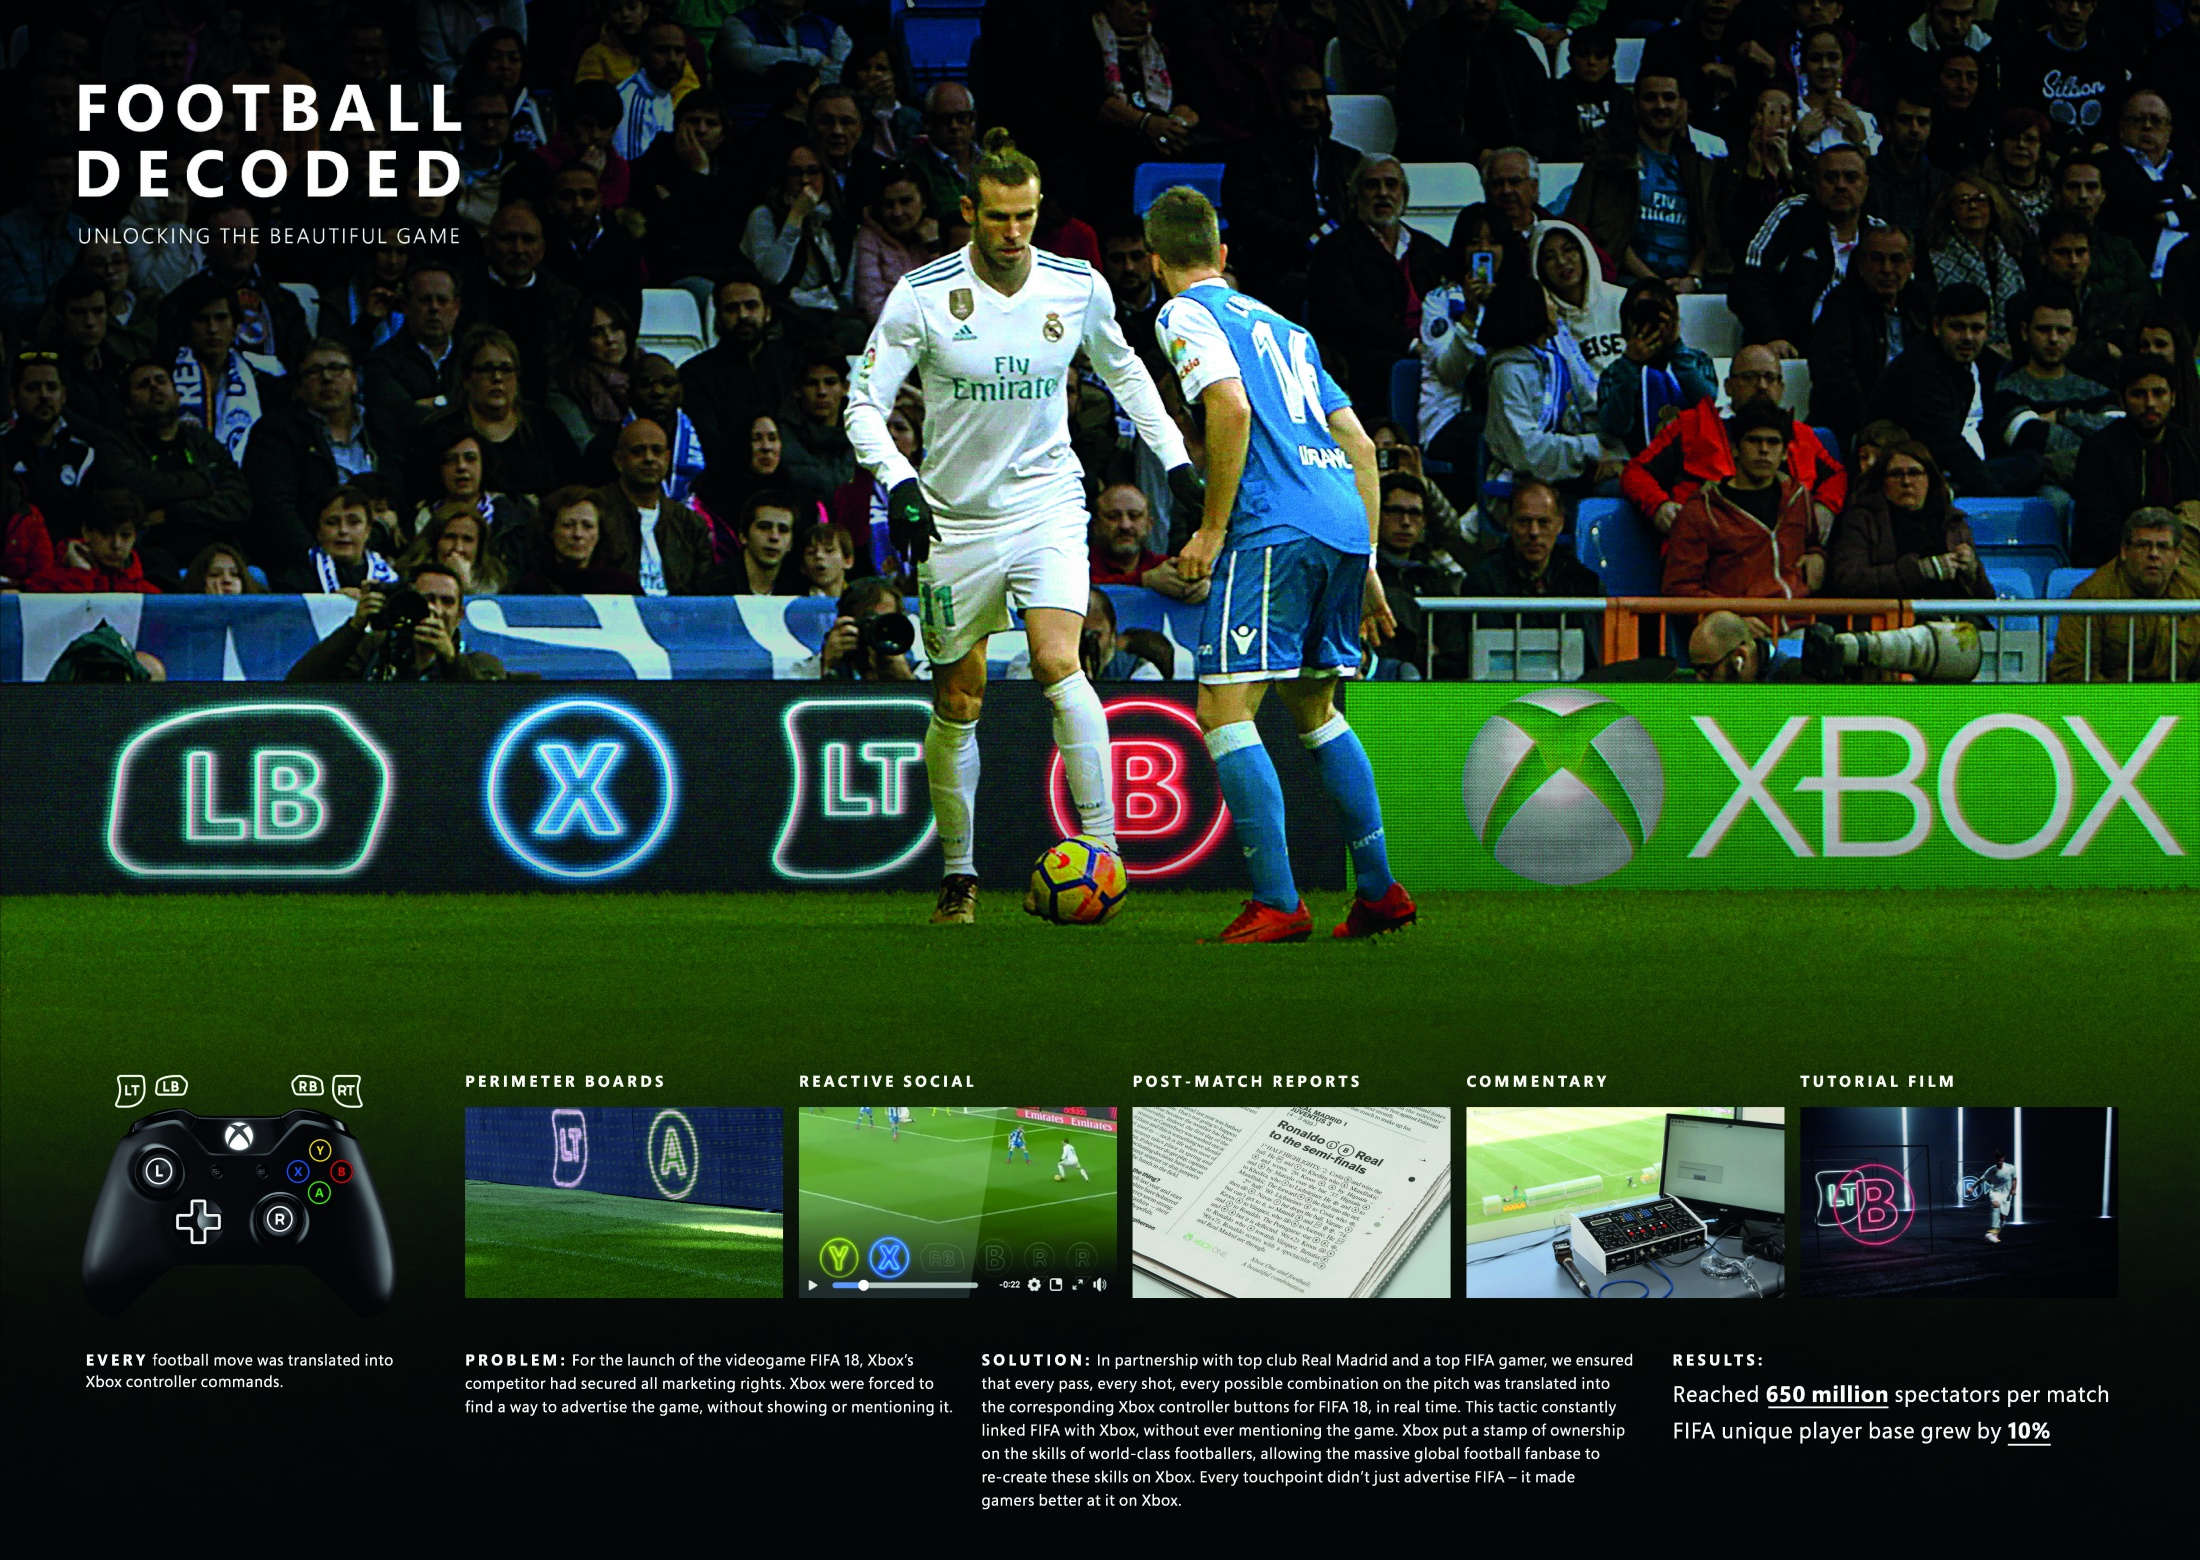 Thumbnail for Football Decoded